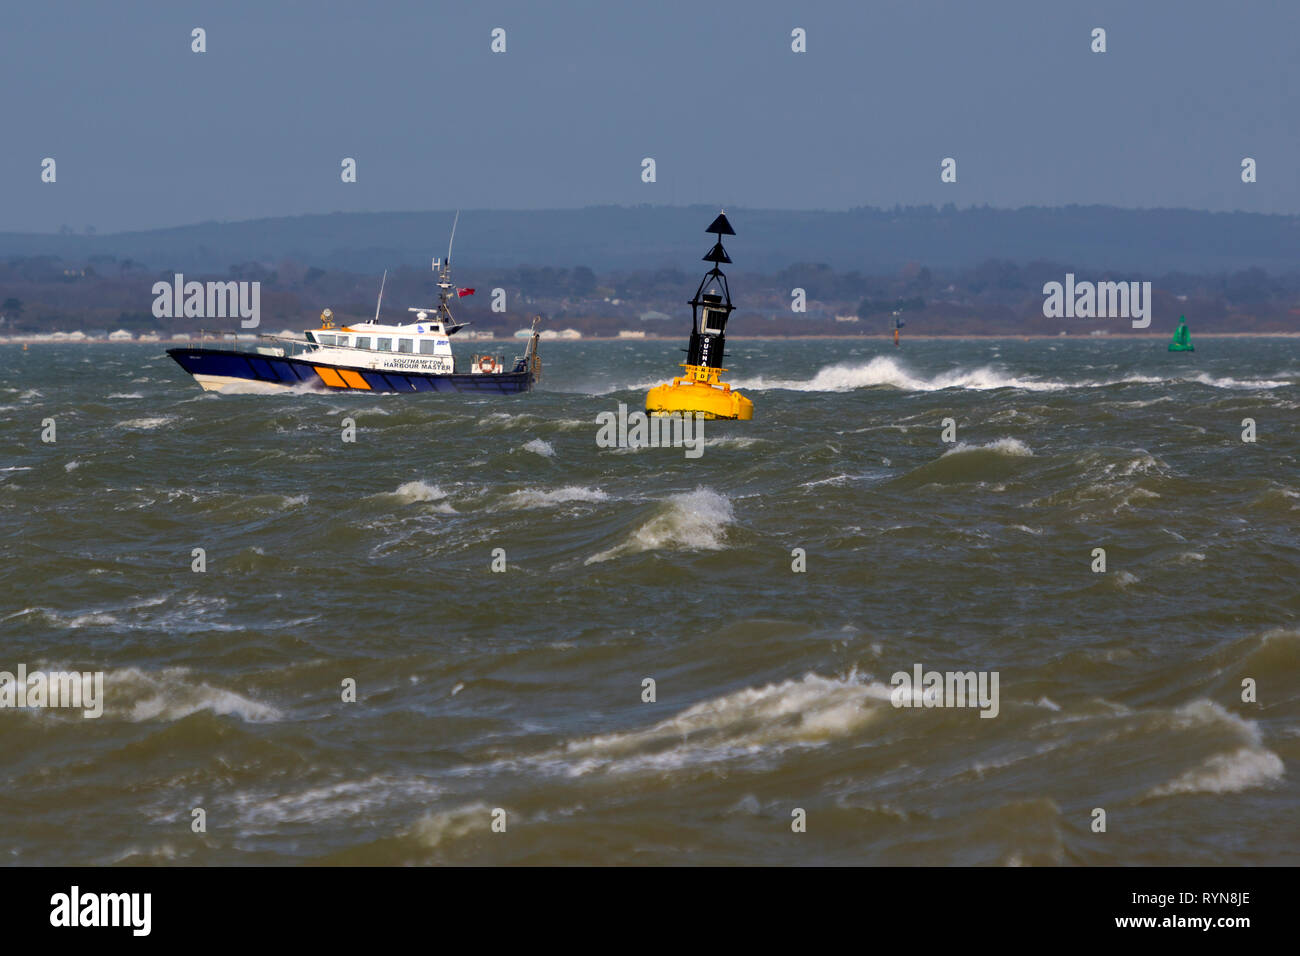 Southampton,Harbour Master, Launch,port,,patrol,boat,service,pilots,escort,safety,authority,navigation,channels,The Solent,Isle of Wight,Hampshire - Stock Image